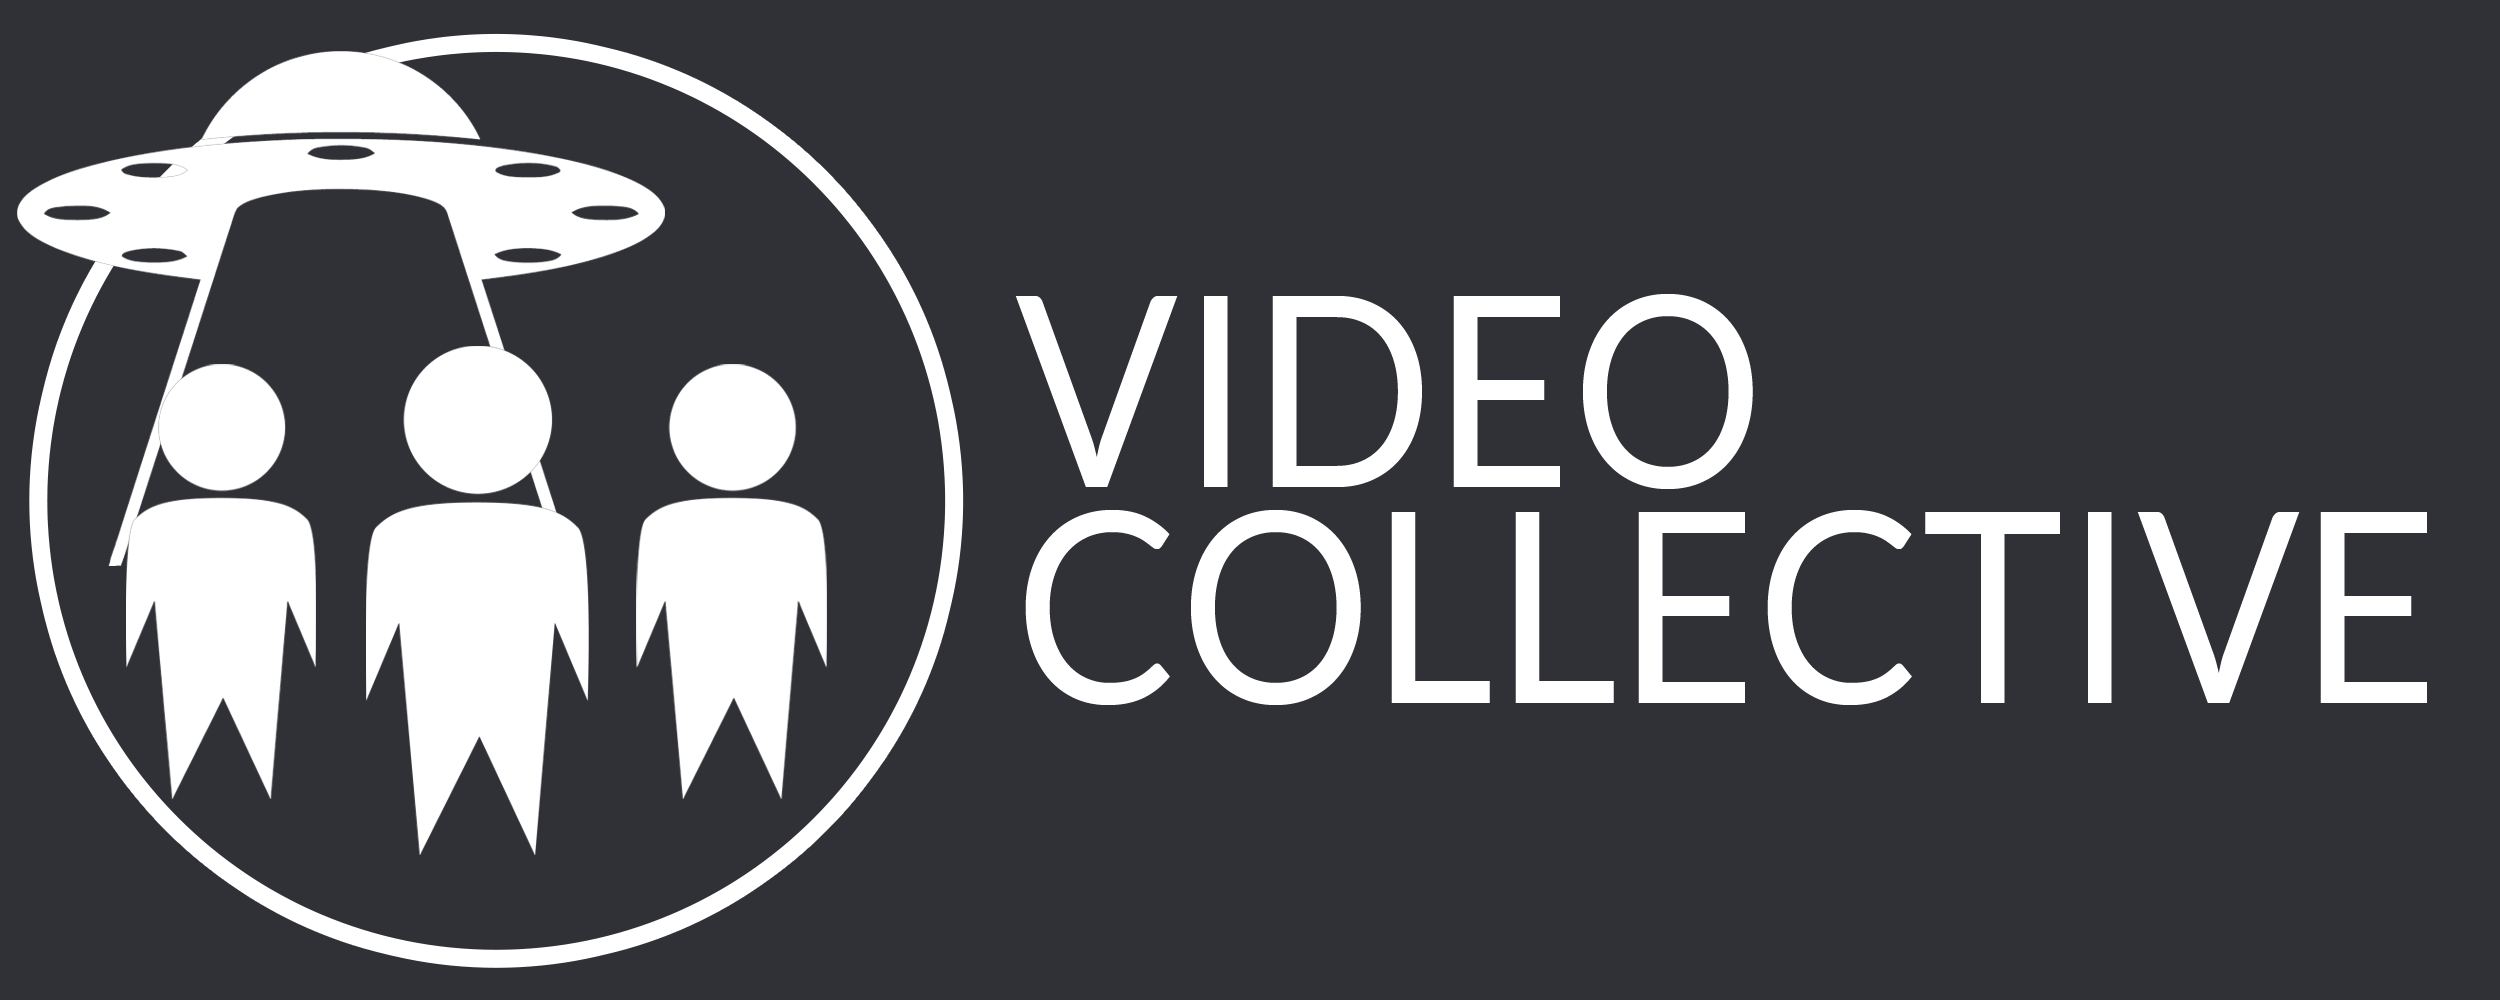 Video Collective Logo